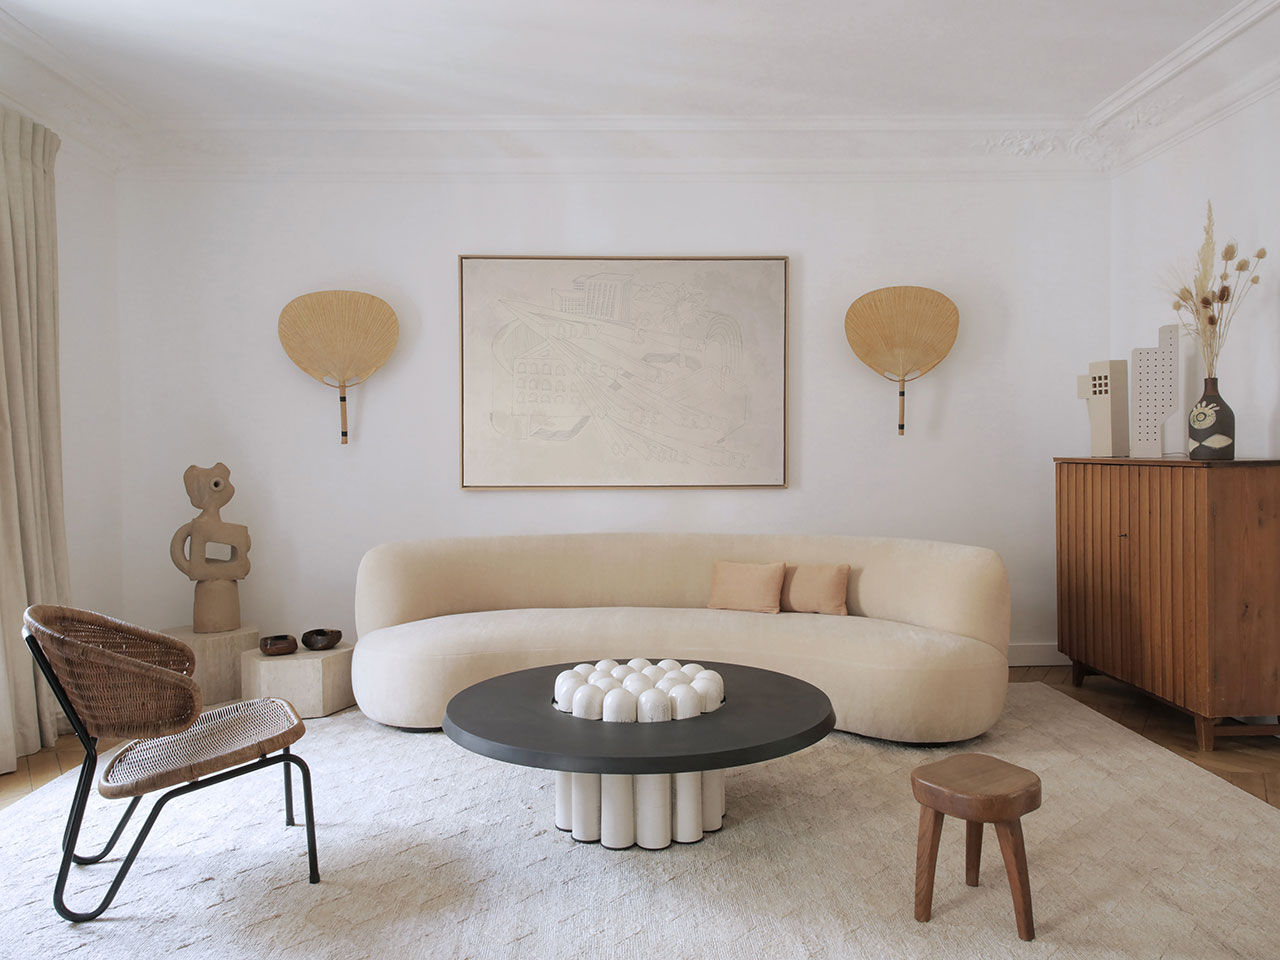 Curved sofa in Pierre Frey mohair fabric by Pierre Augustin Rose, 2018. Coffee table in lava stone and raku by Emmanuelle Simon,2018. Rattan chair,model 568 by Dirk Van Sliedregt, 1954. Photography by Damien de Medeiros.